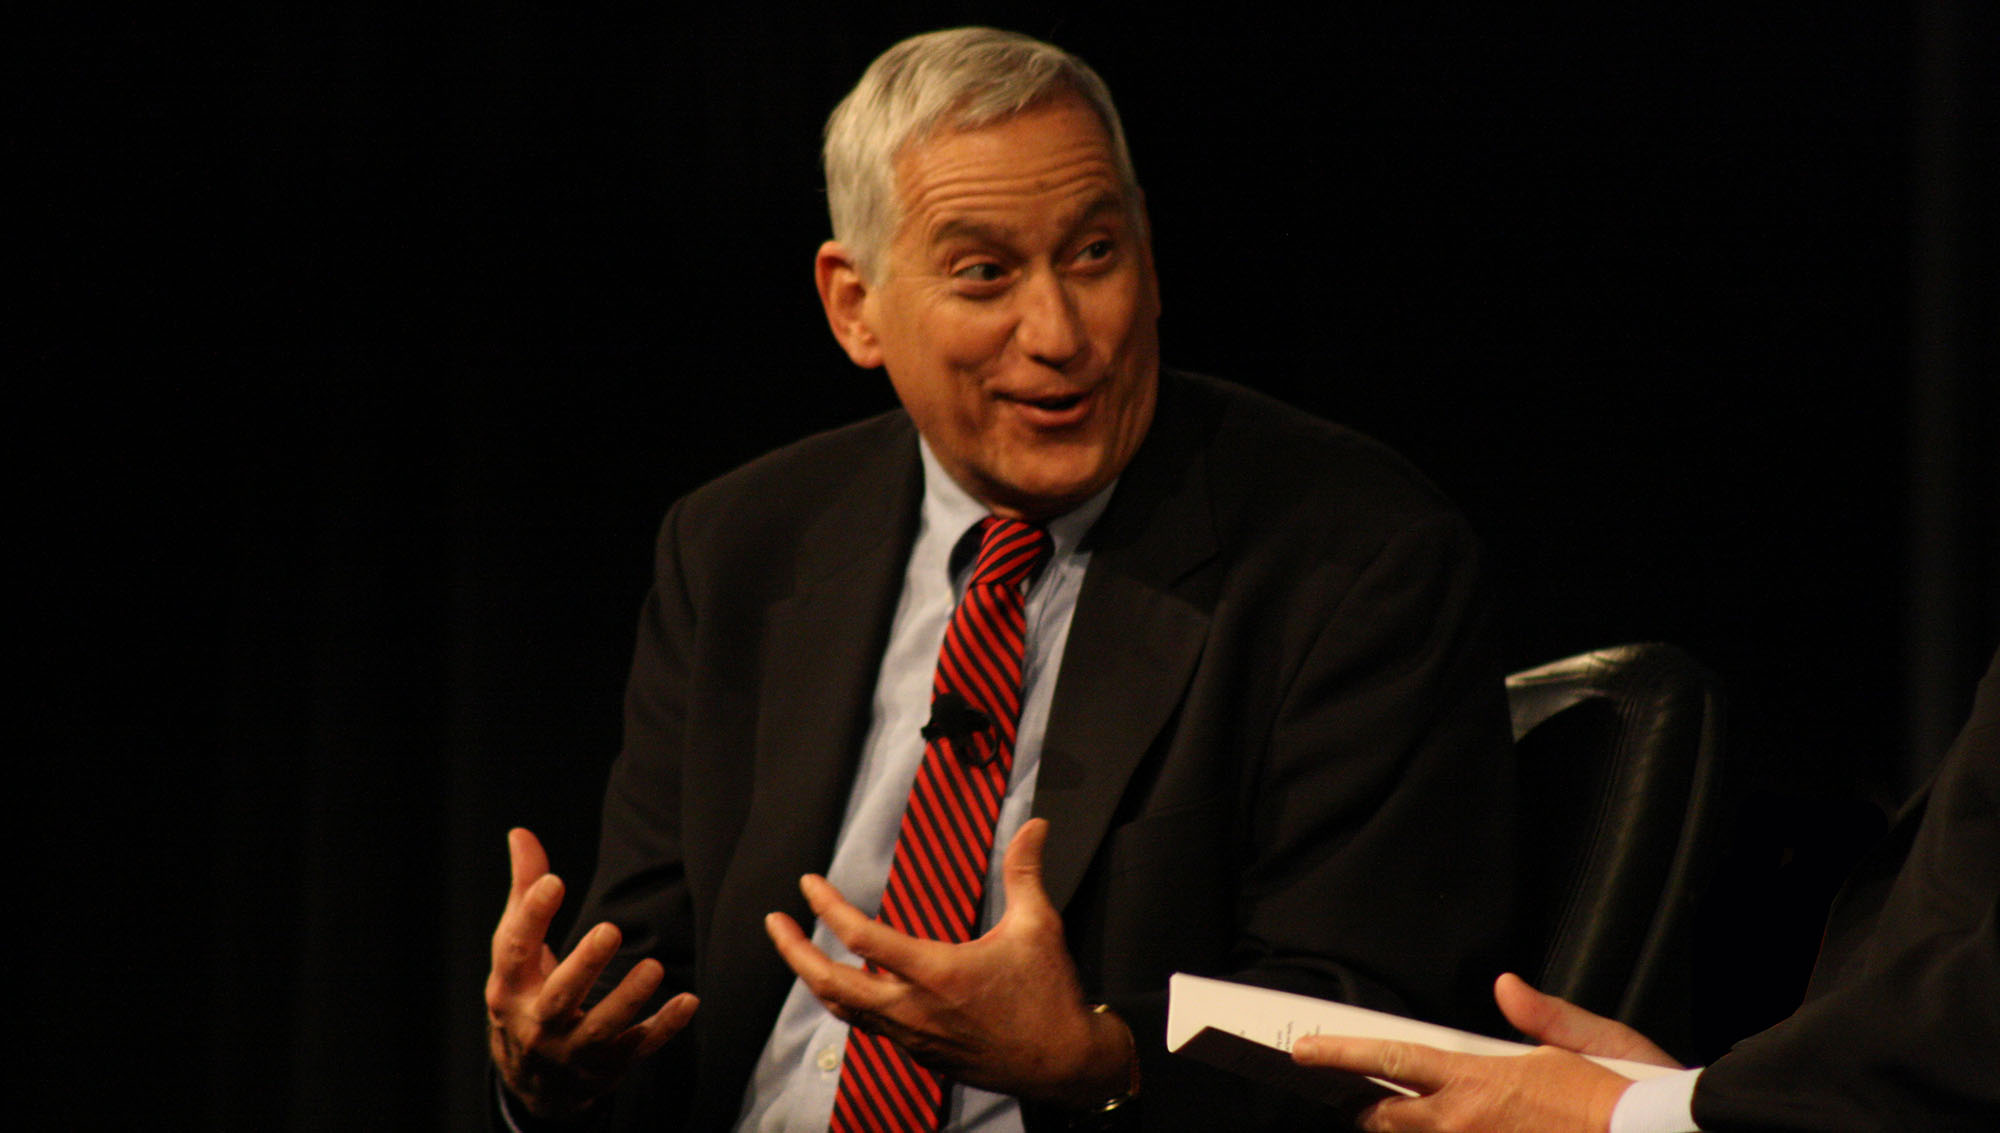 Walter Isaacson shares insights from his 2011 book Steve Jobs, based on more than 40 interviews with Jobs.